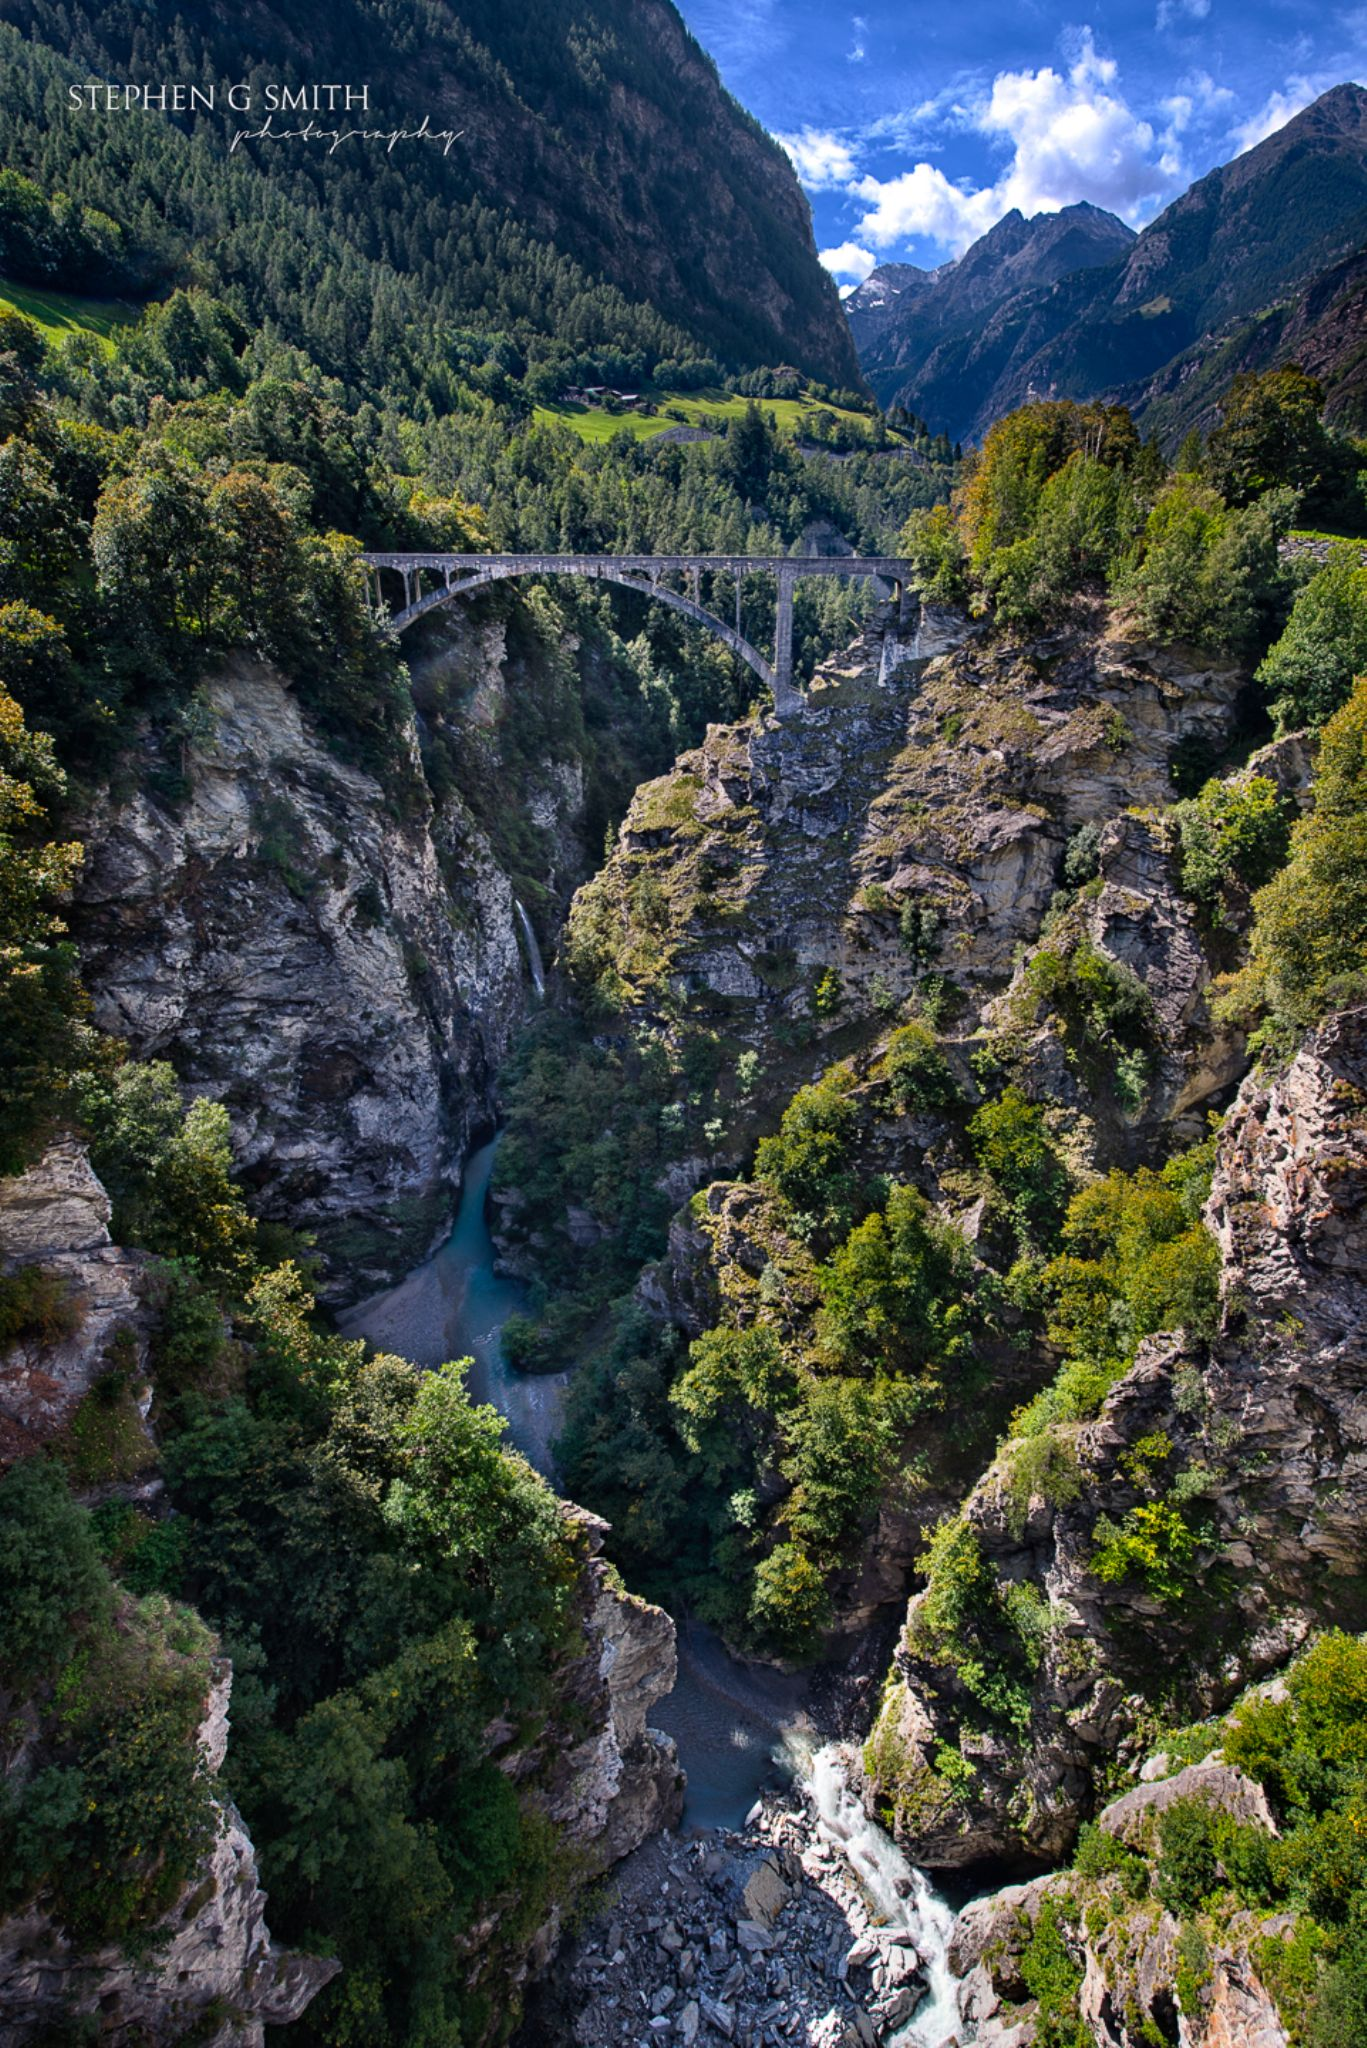 Crossing the gorge Valais Switzerland by Stephen G Smith Photography